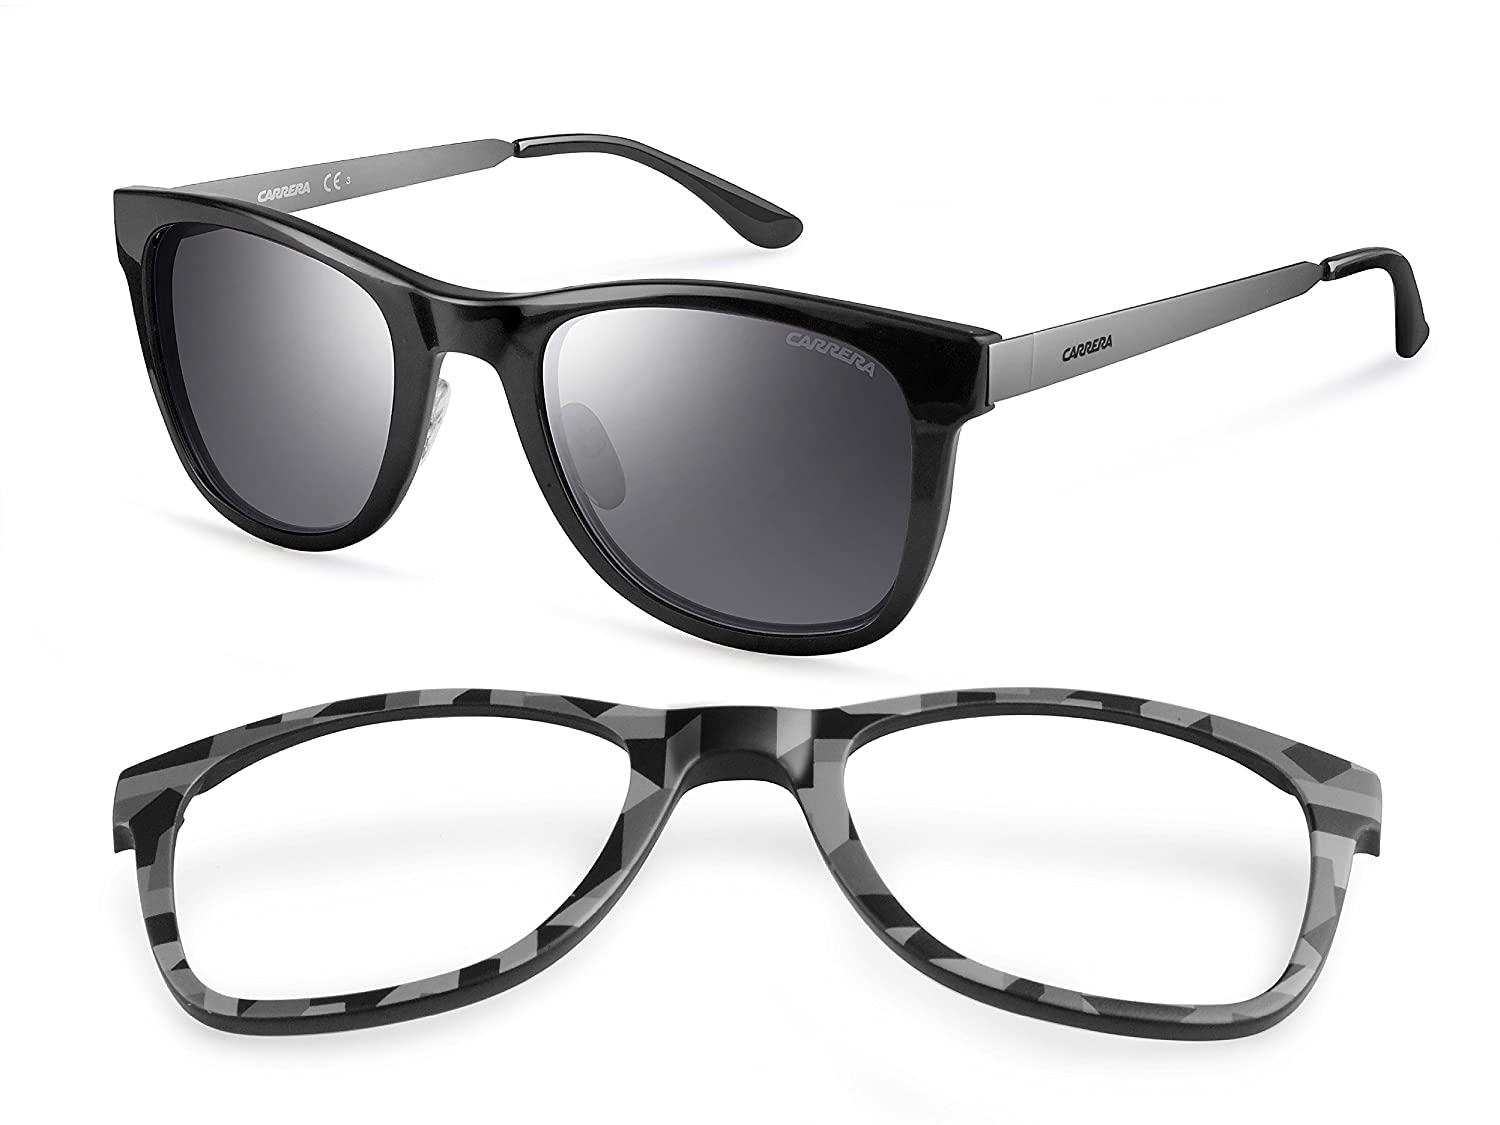 Carrera - Gafas de sol Rectangulares 5023/S Interchangeable, Negro